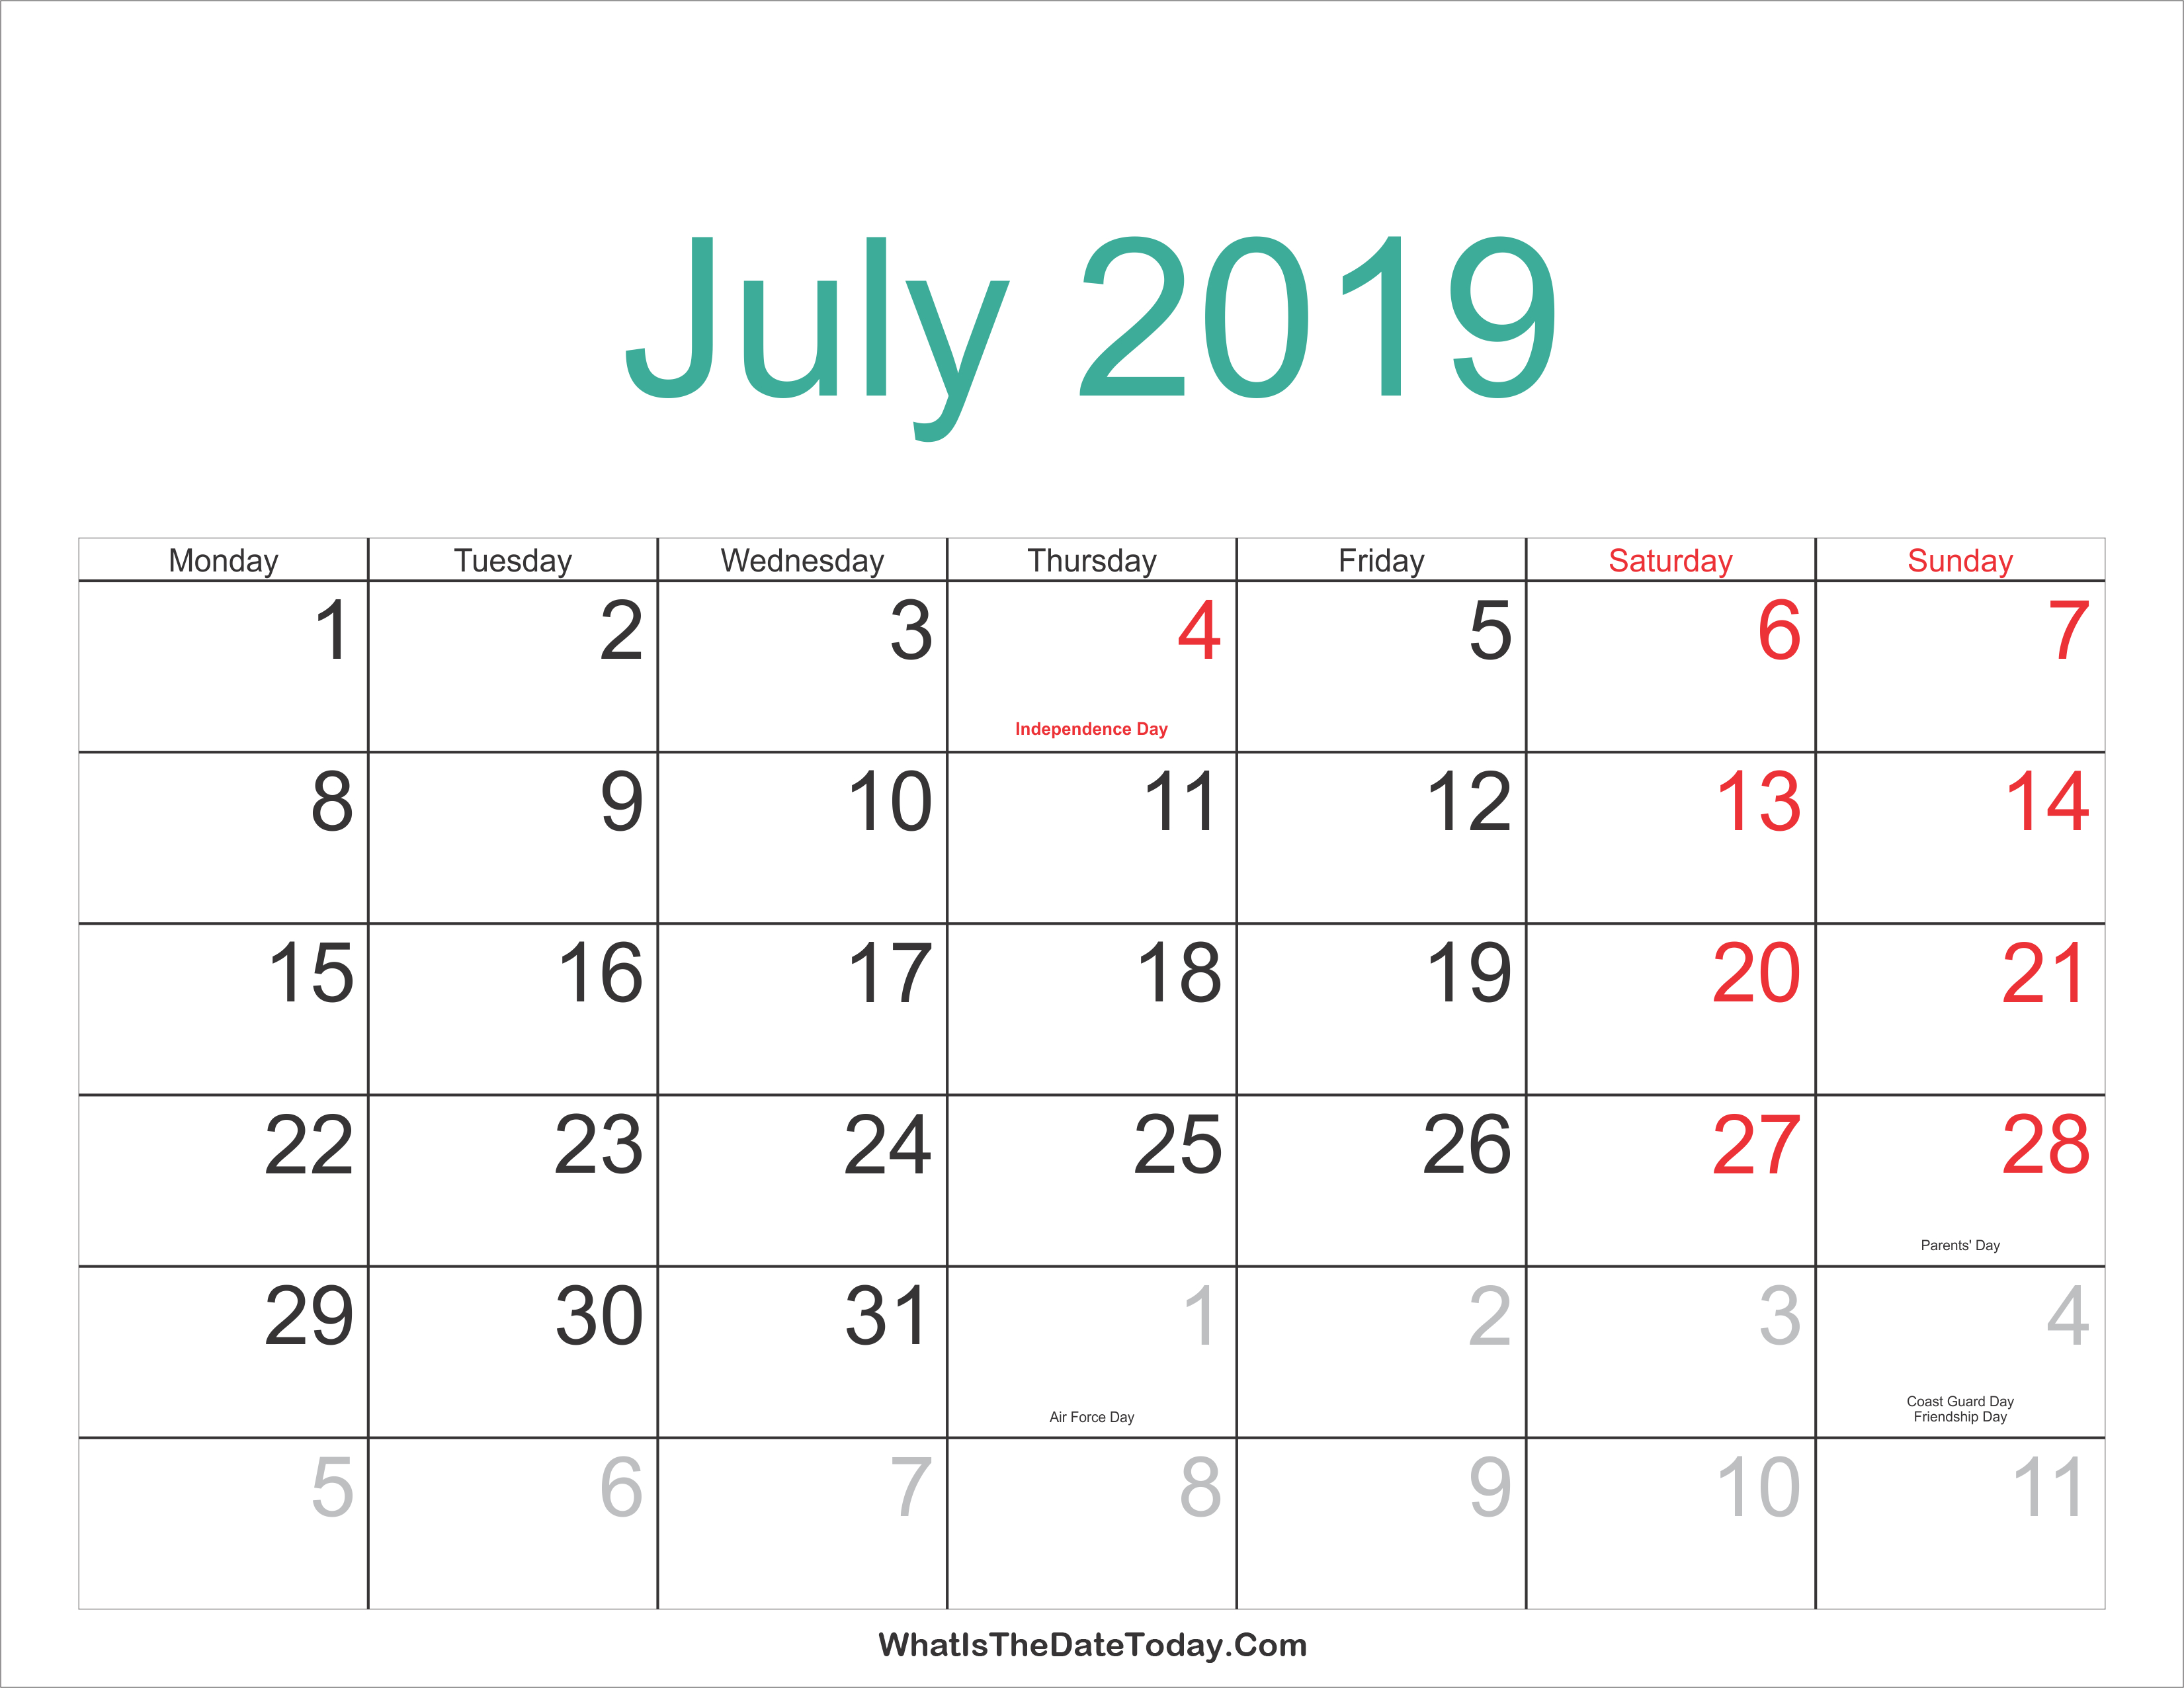 July 2019 Calendar With Holidays Printable, July 2019 Holidays with regard to Editable October 2019 Calendar With Religious Holidays